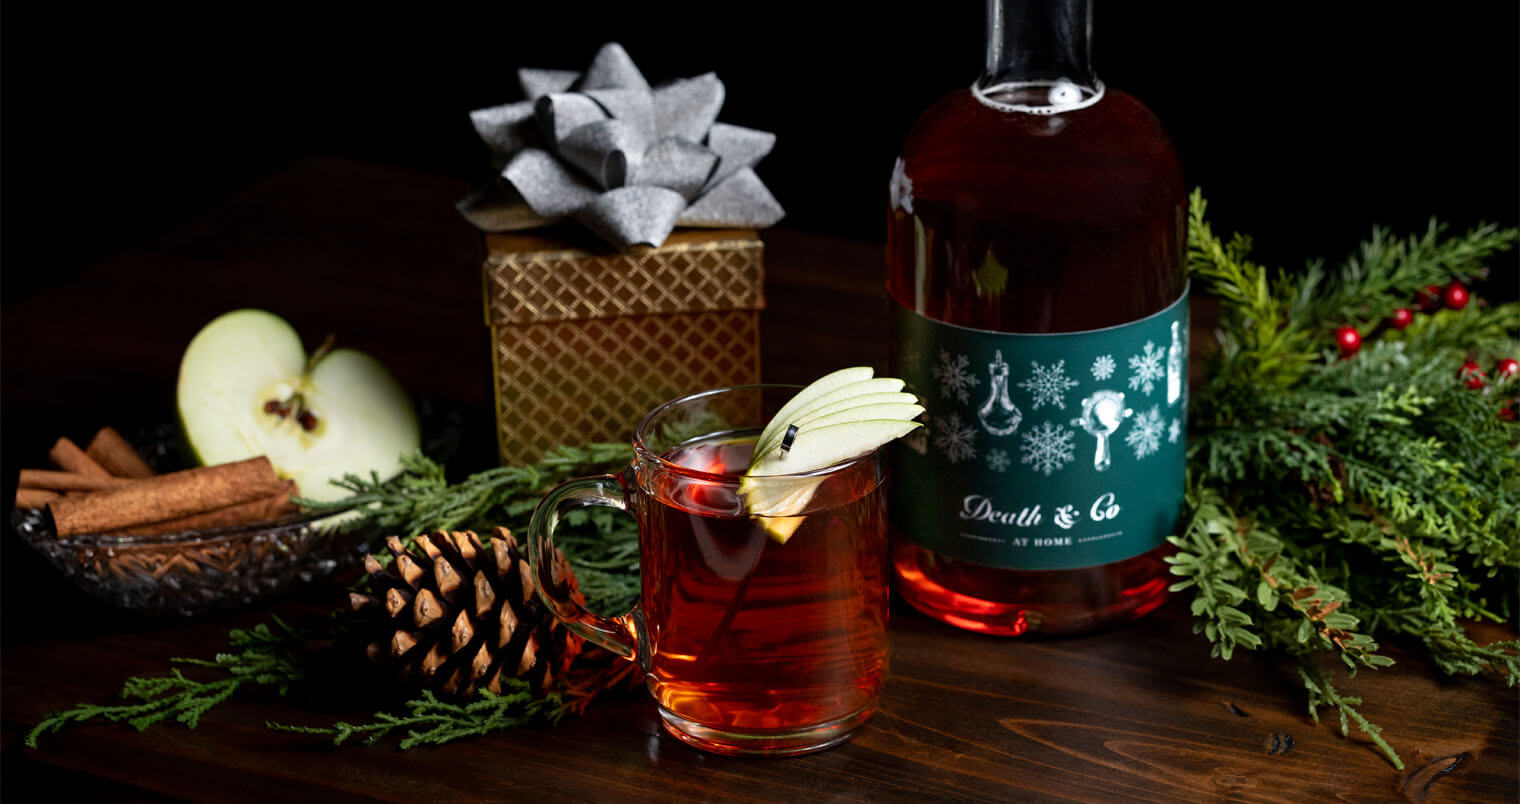 Death & Co Hibernal Toddy featured image